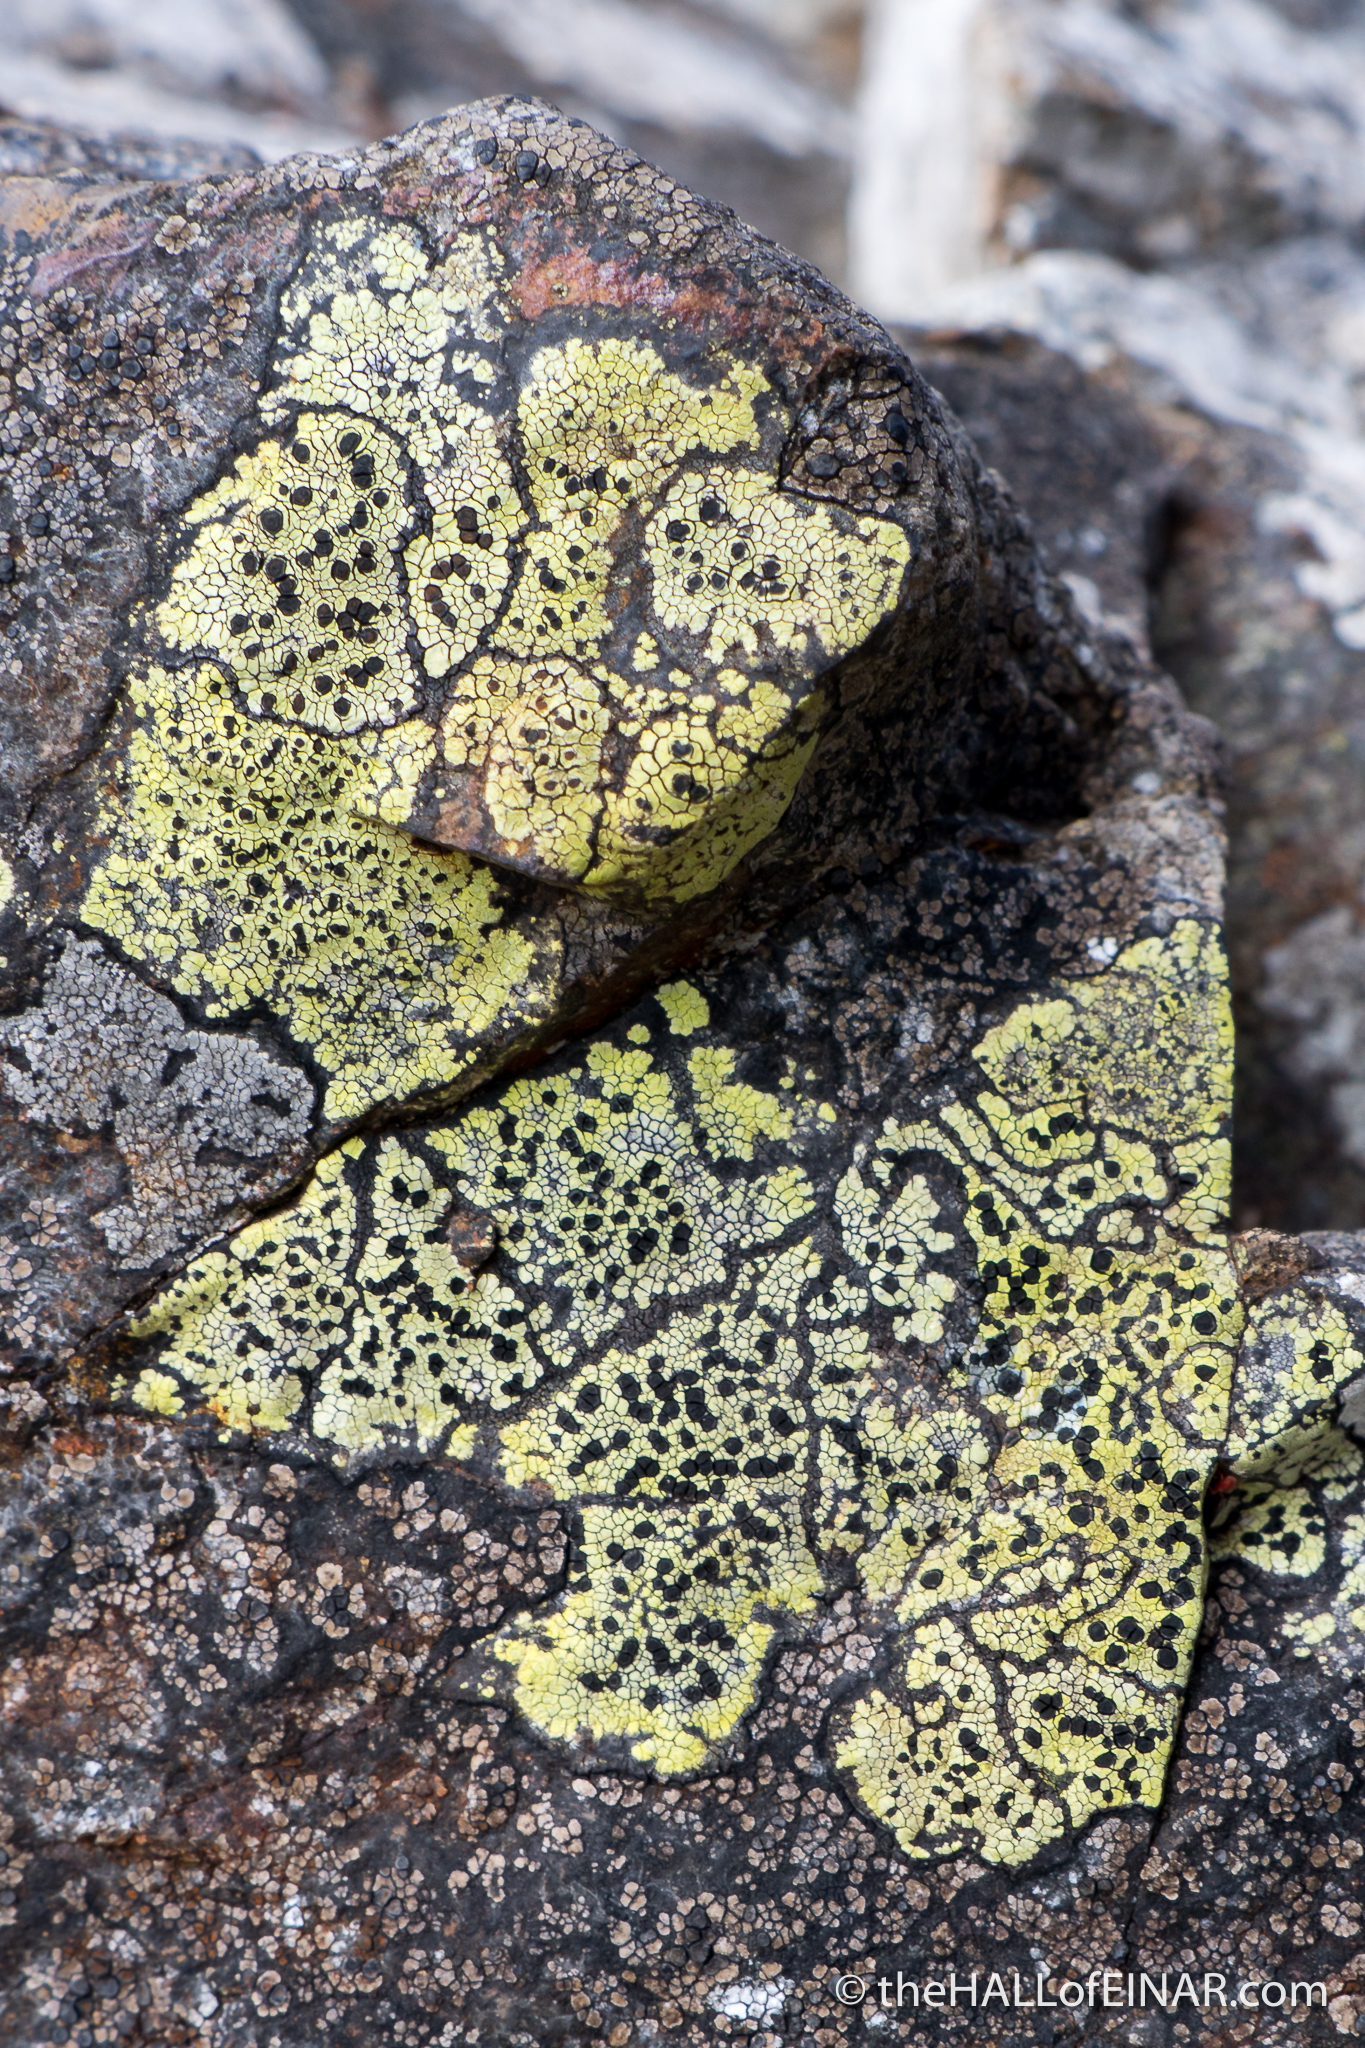 Castle Drogo Lichen - The Hall of Einar - photograph (c) David Bailey (not the)